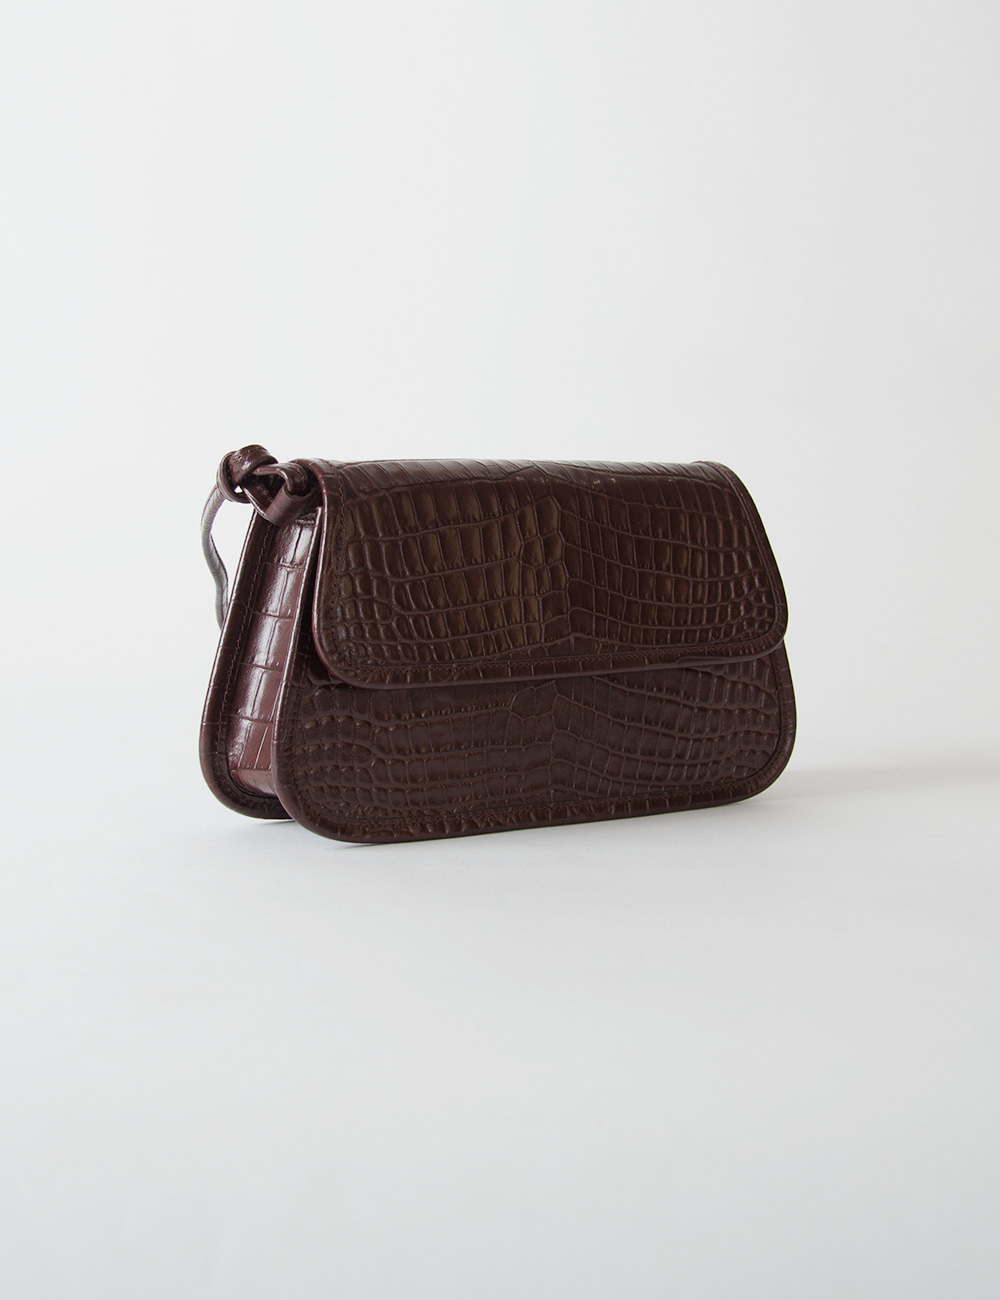 MAISON246,[2차 리오더]246 KOE MINI CROCO_BROWN,No.246